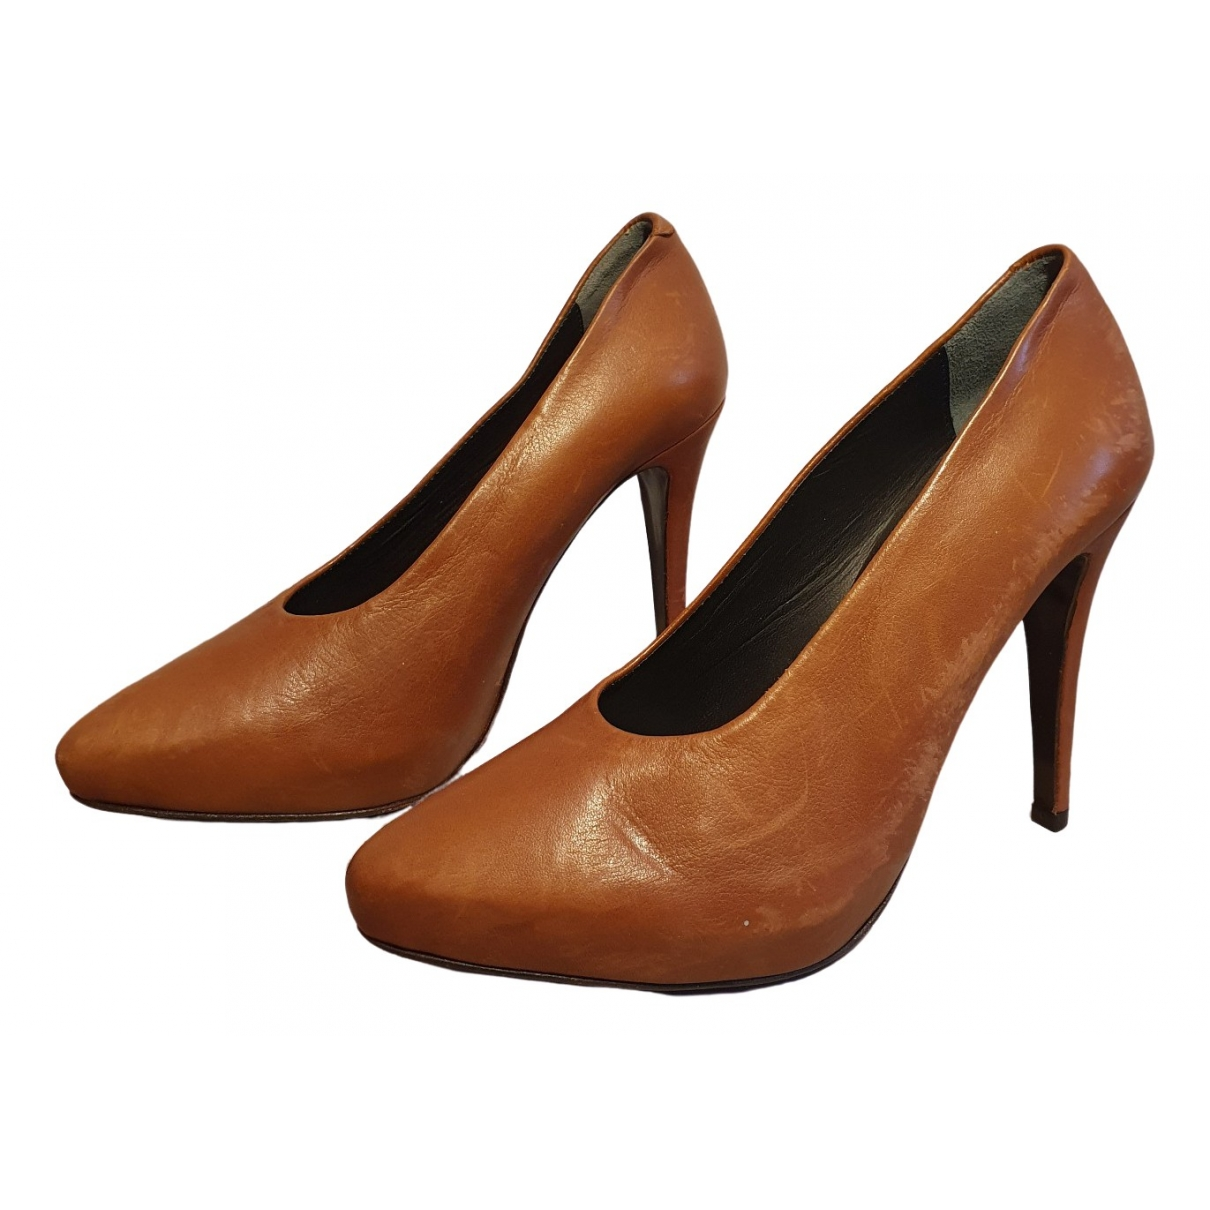 Rodebjer \N Brown Leather Heels for Women 36 EU